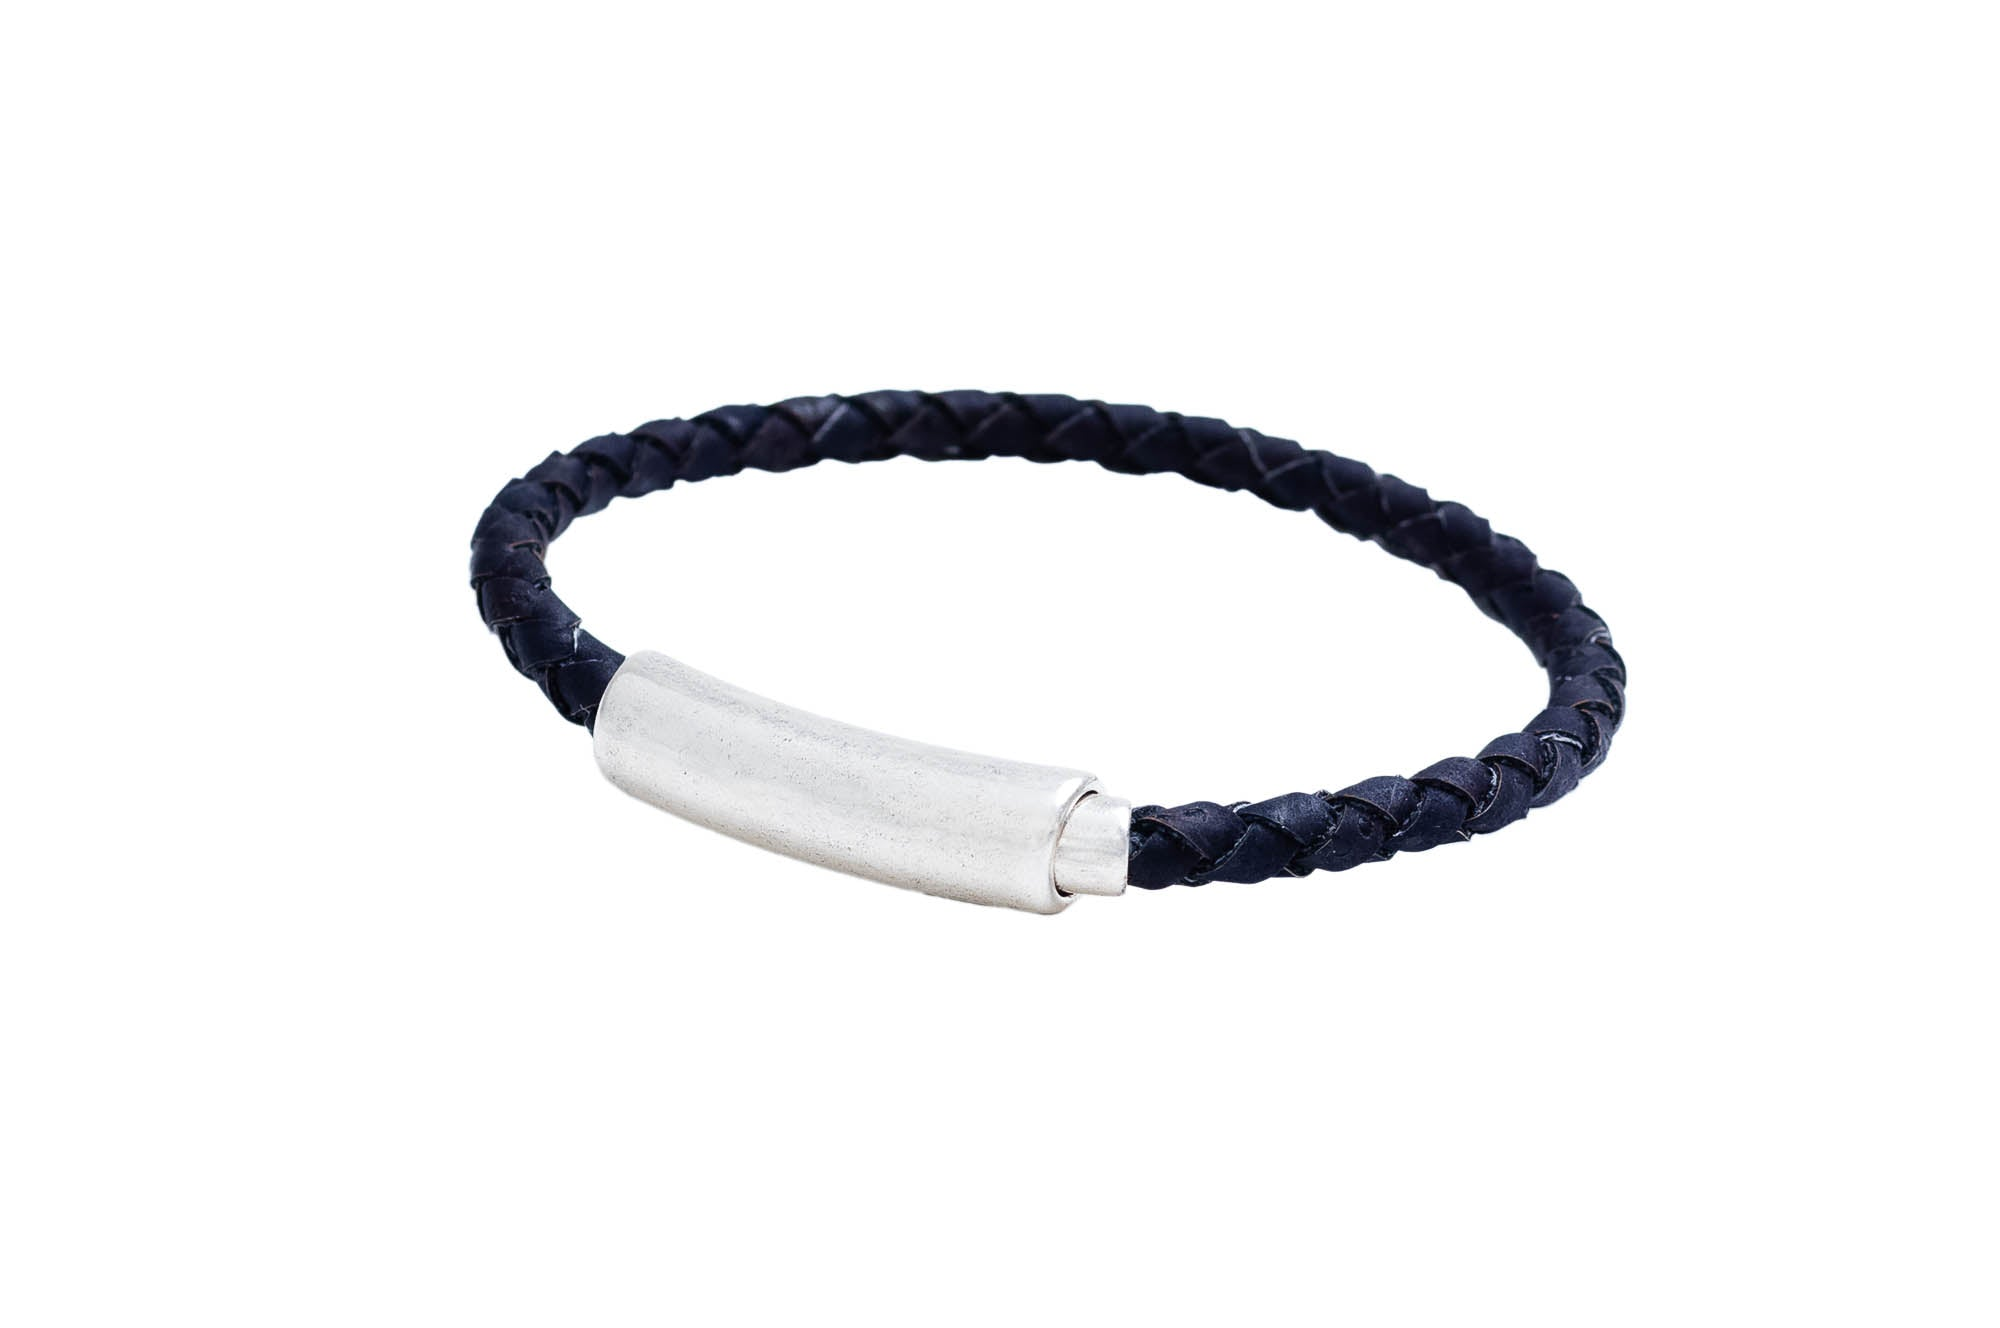 Vegan Bracelets UK